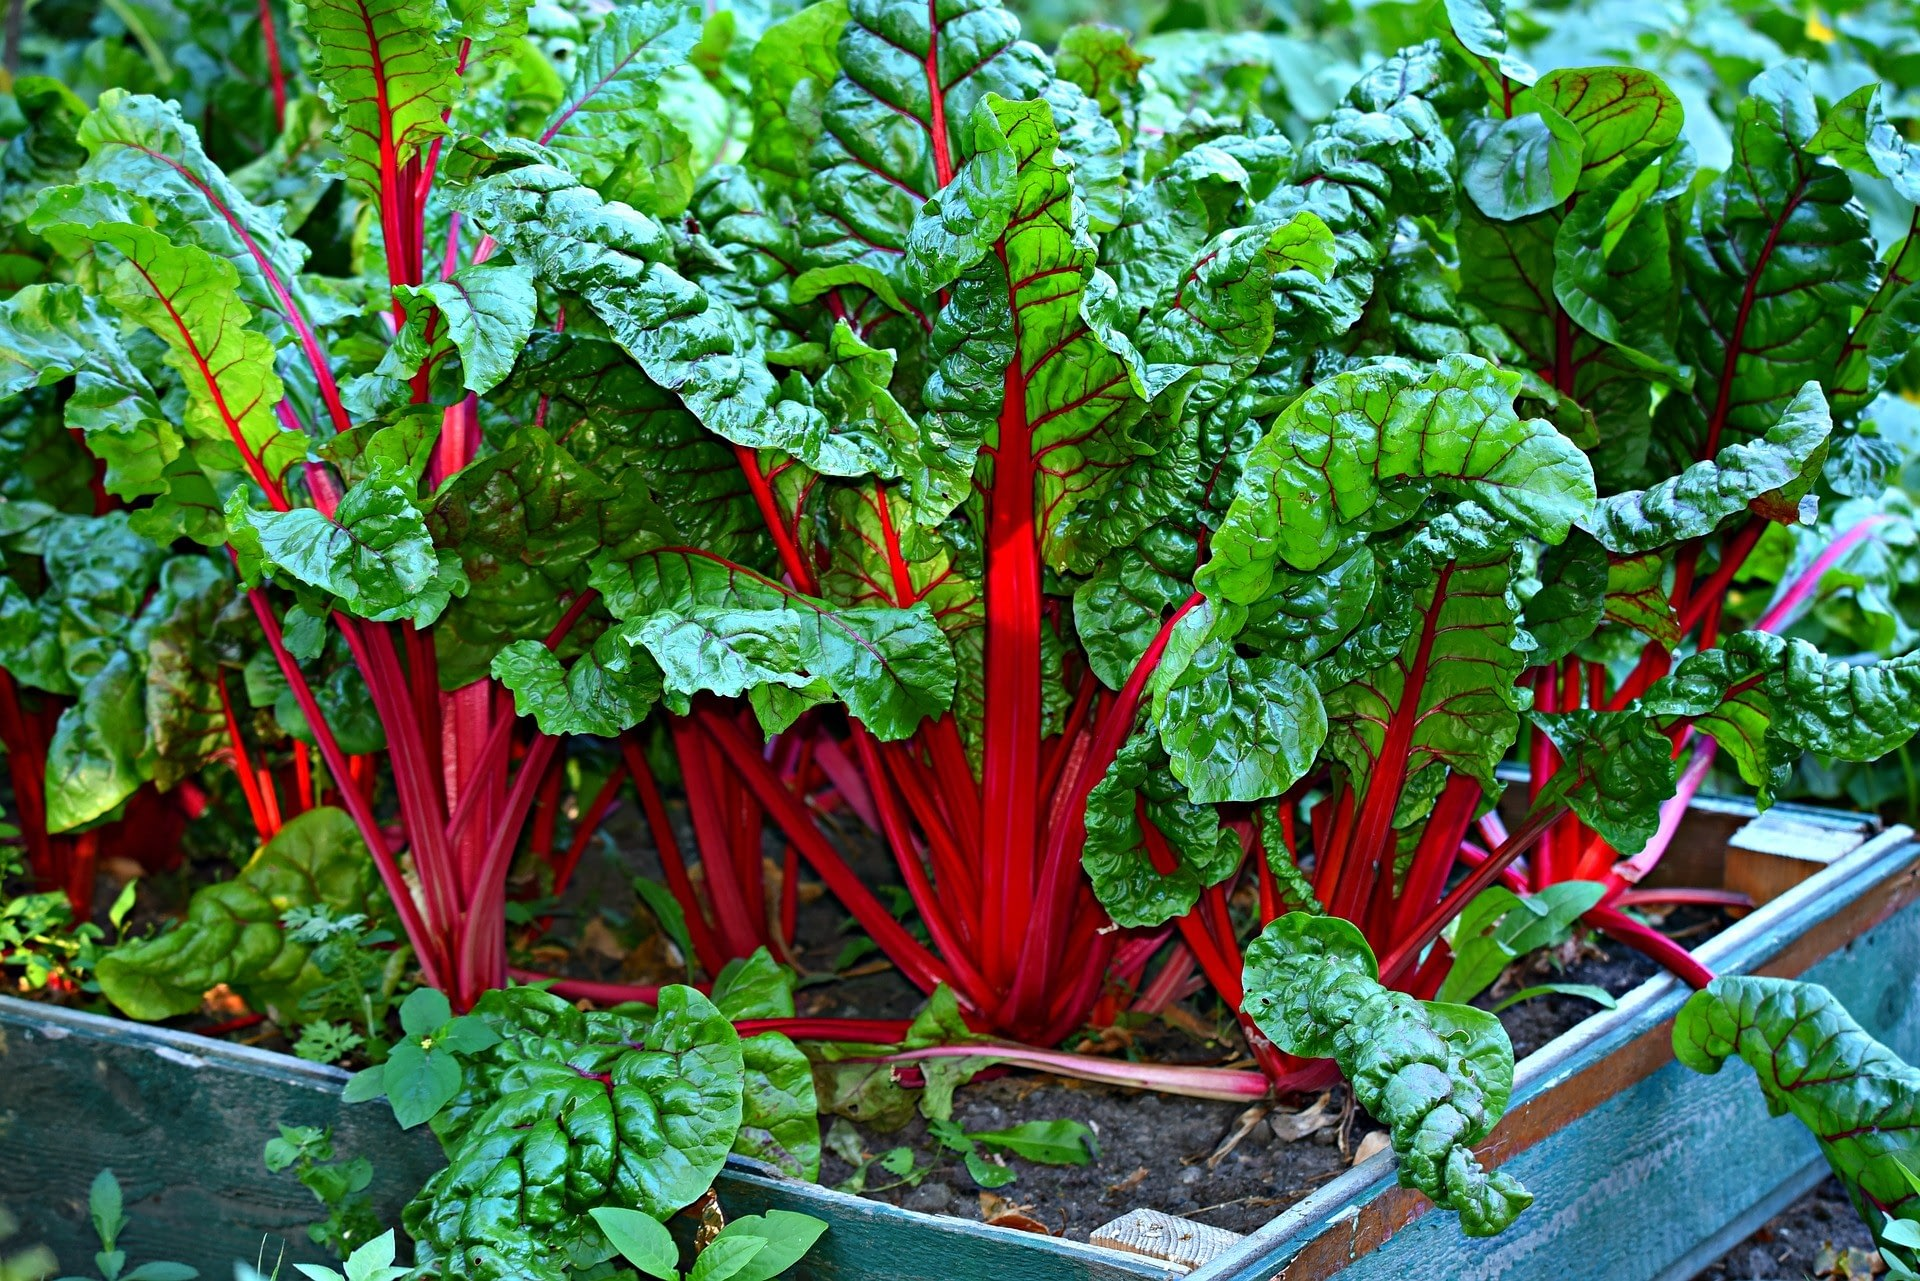 Leafy green vegetable Swiss Chard